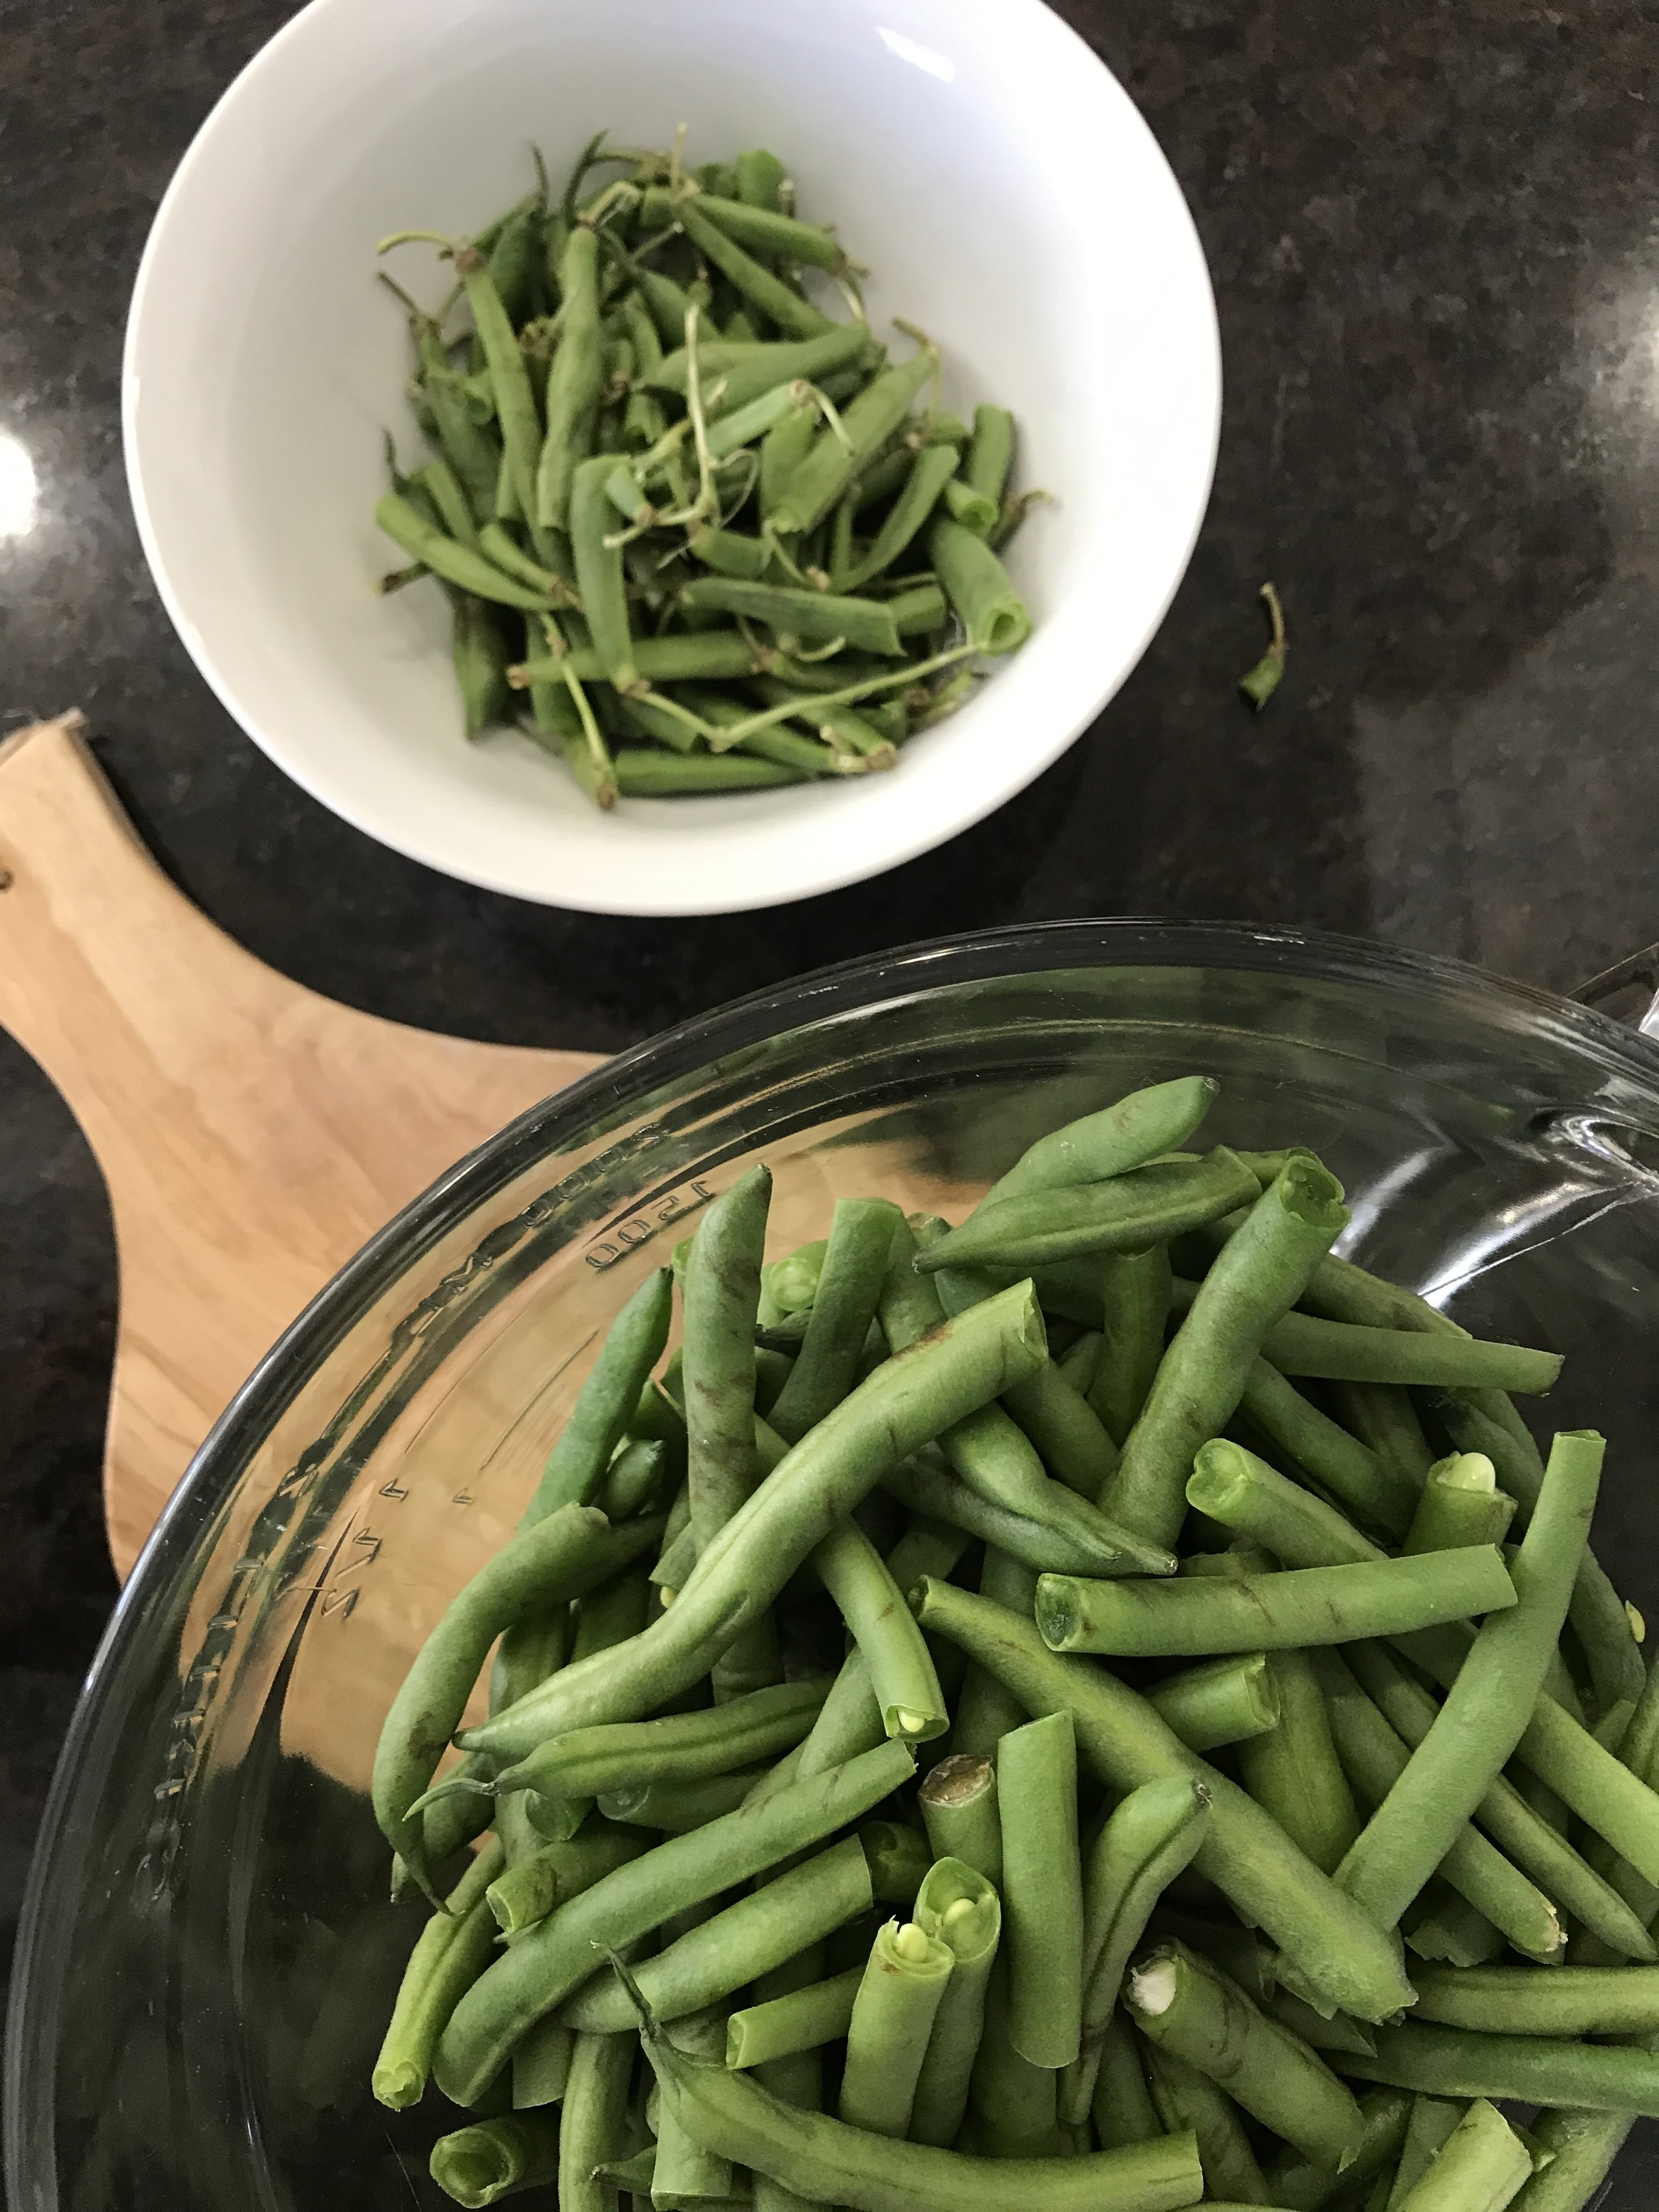 Kids in the kitchen. Green beans are a great veggie to let them help prepare. www.ChefShayna.com